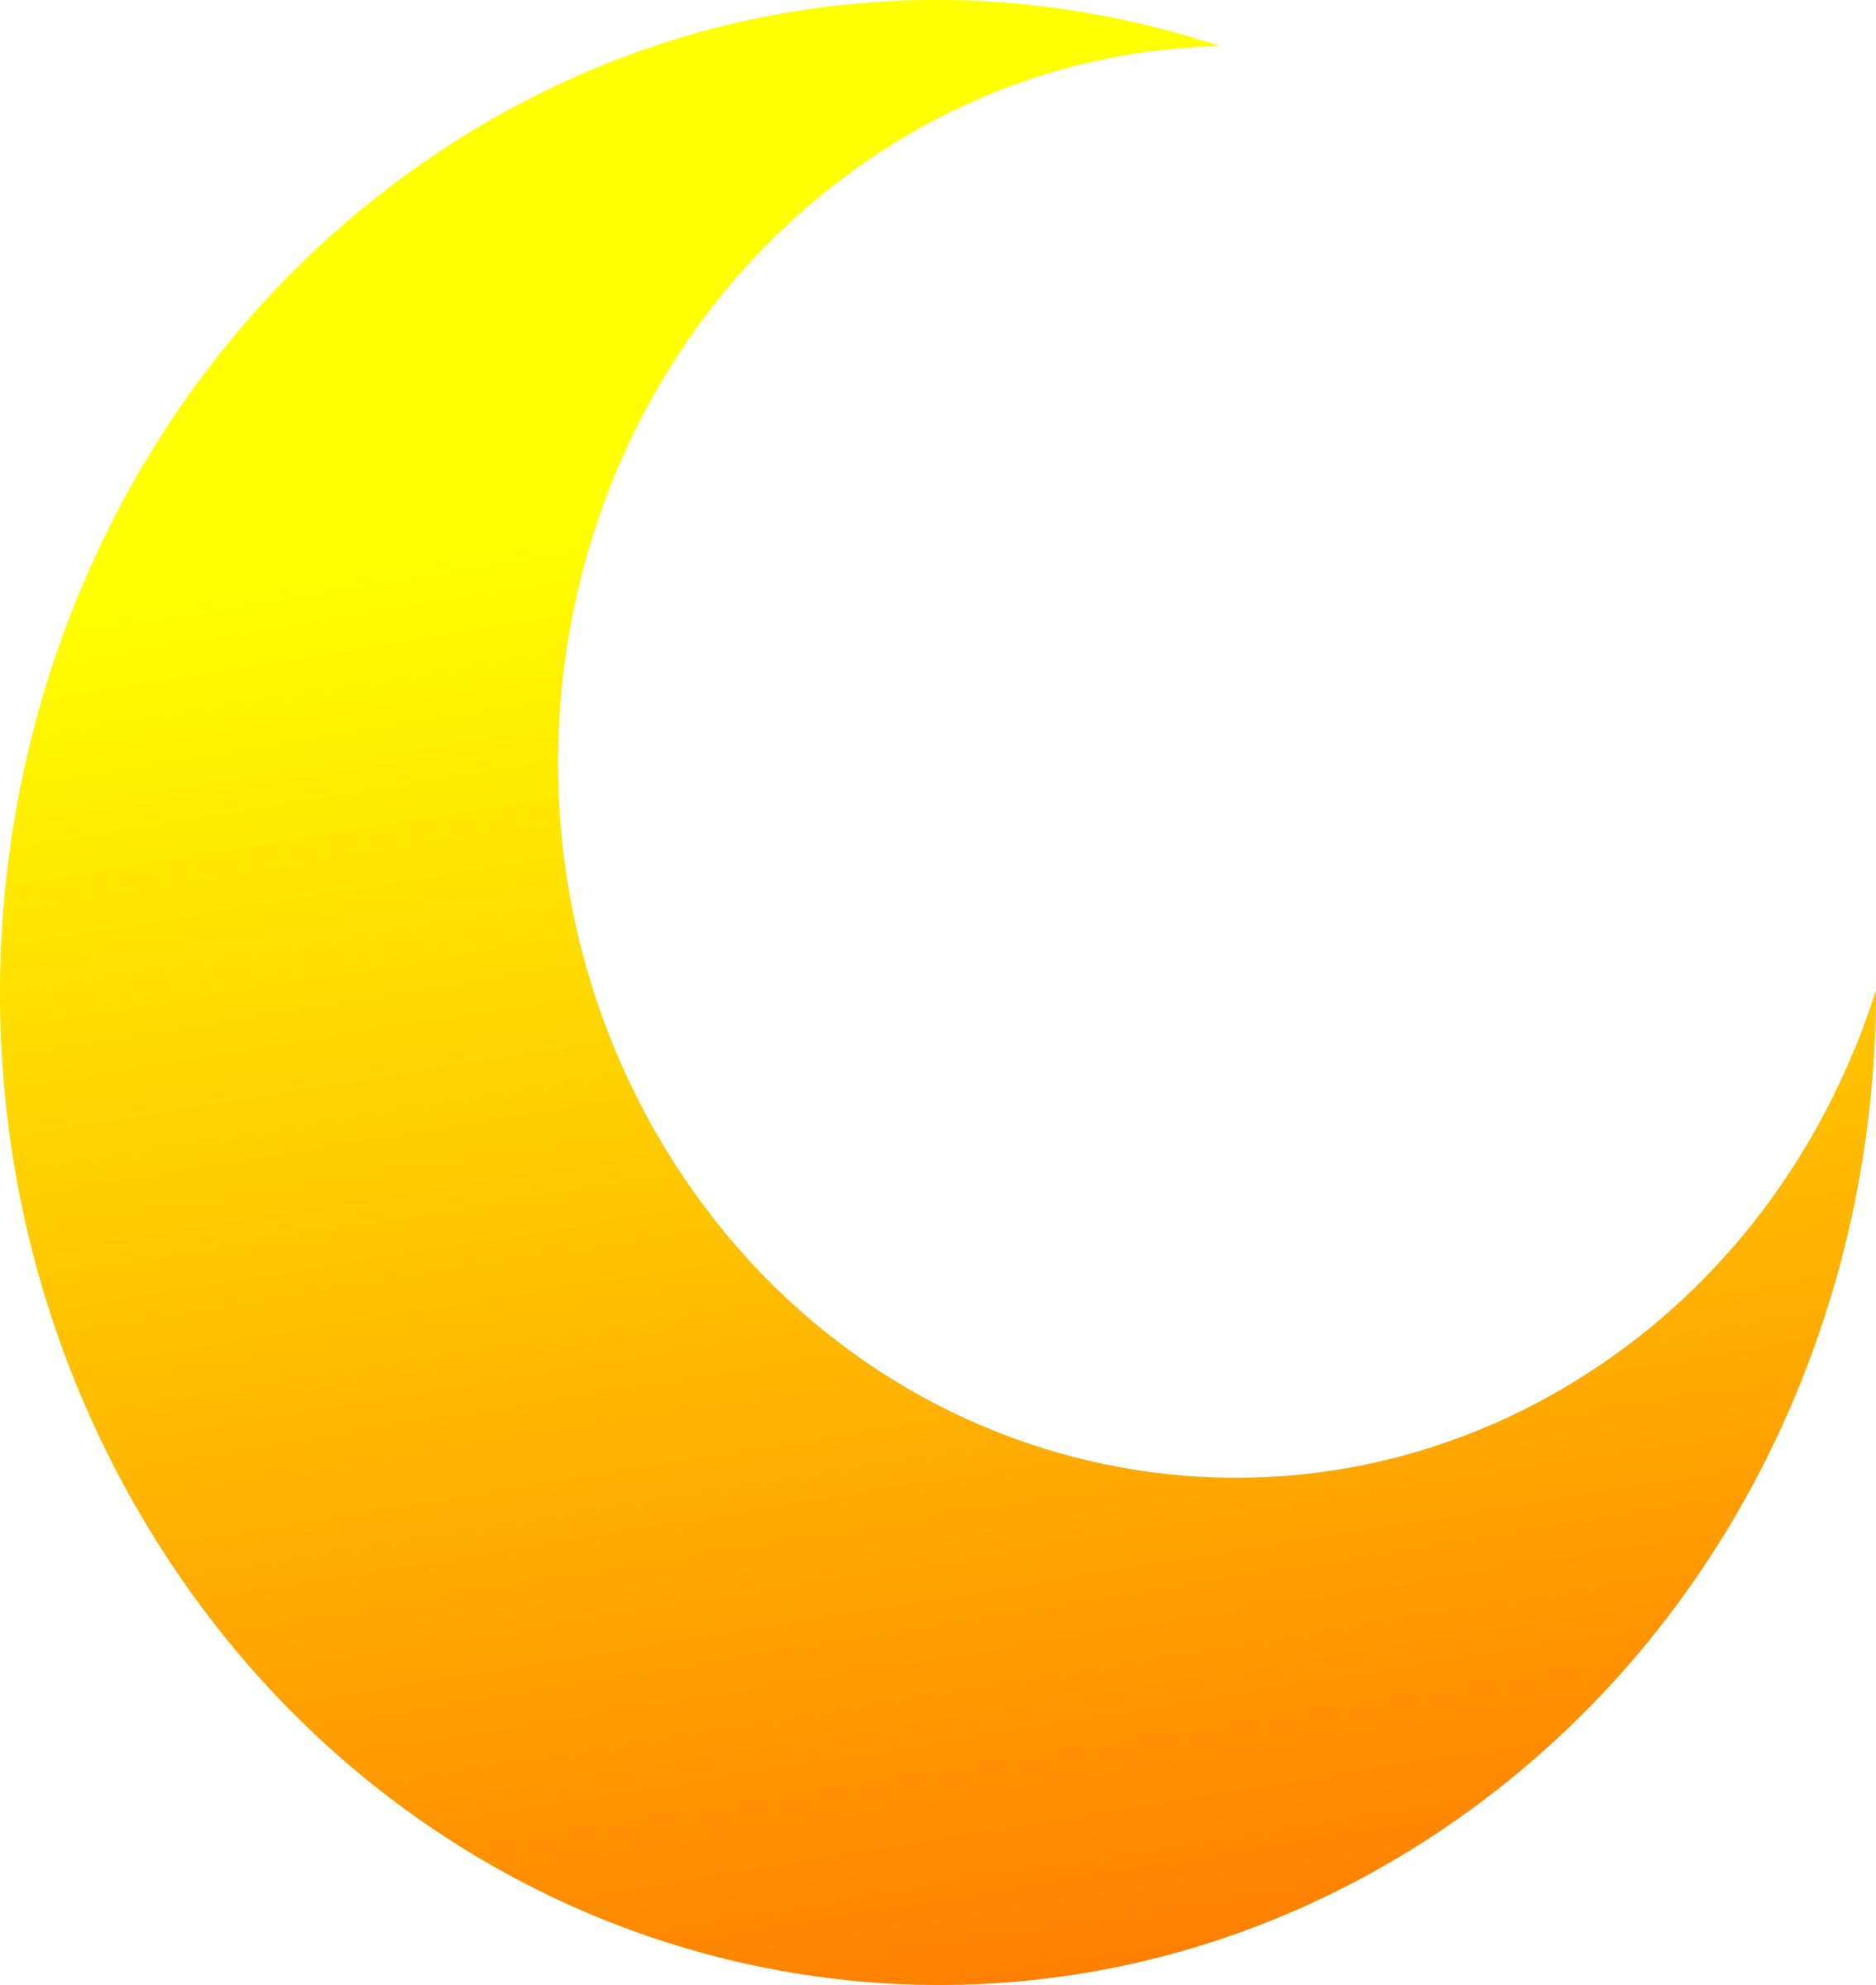 yellow crescent half moon vector clipart image free stock photo rh goodfreephotos com clip art moon phases clip art moon face